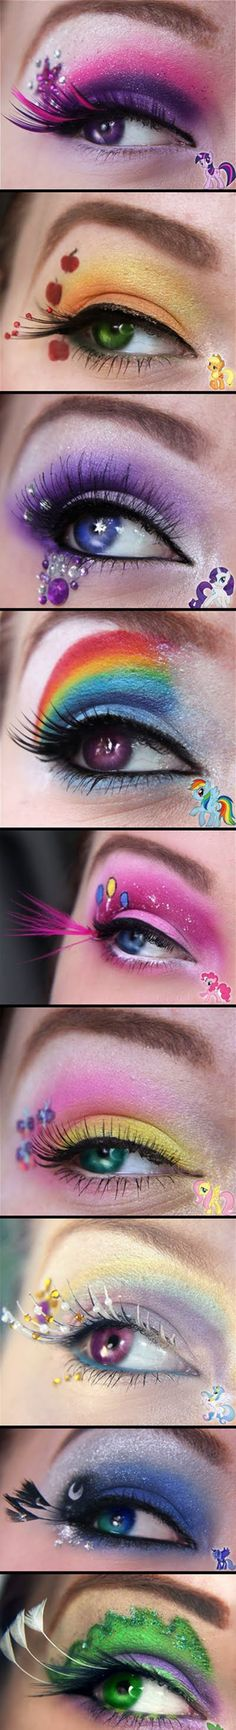 my little pony: friendship is magic inspired eye makeup